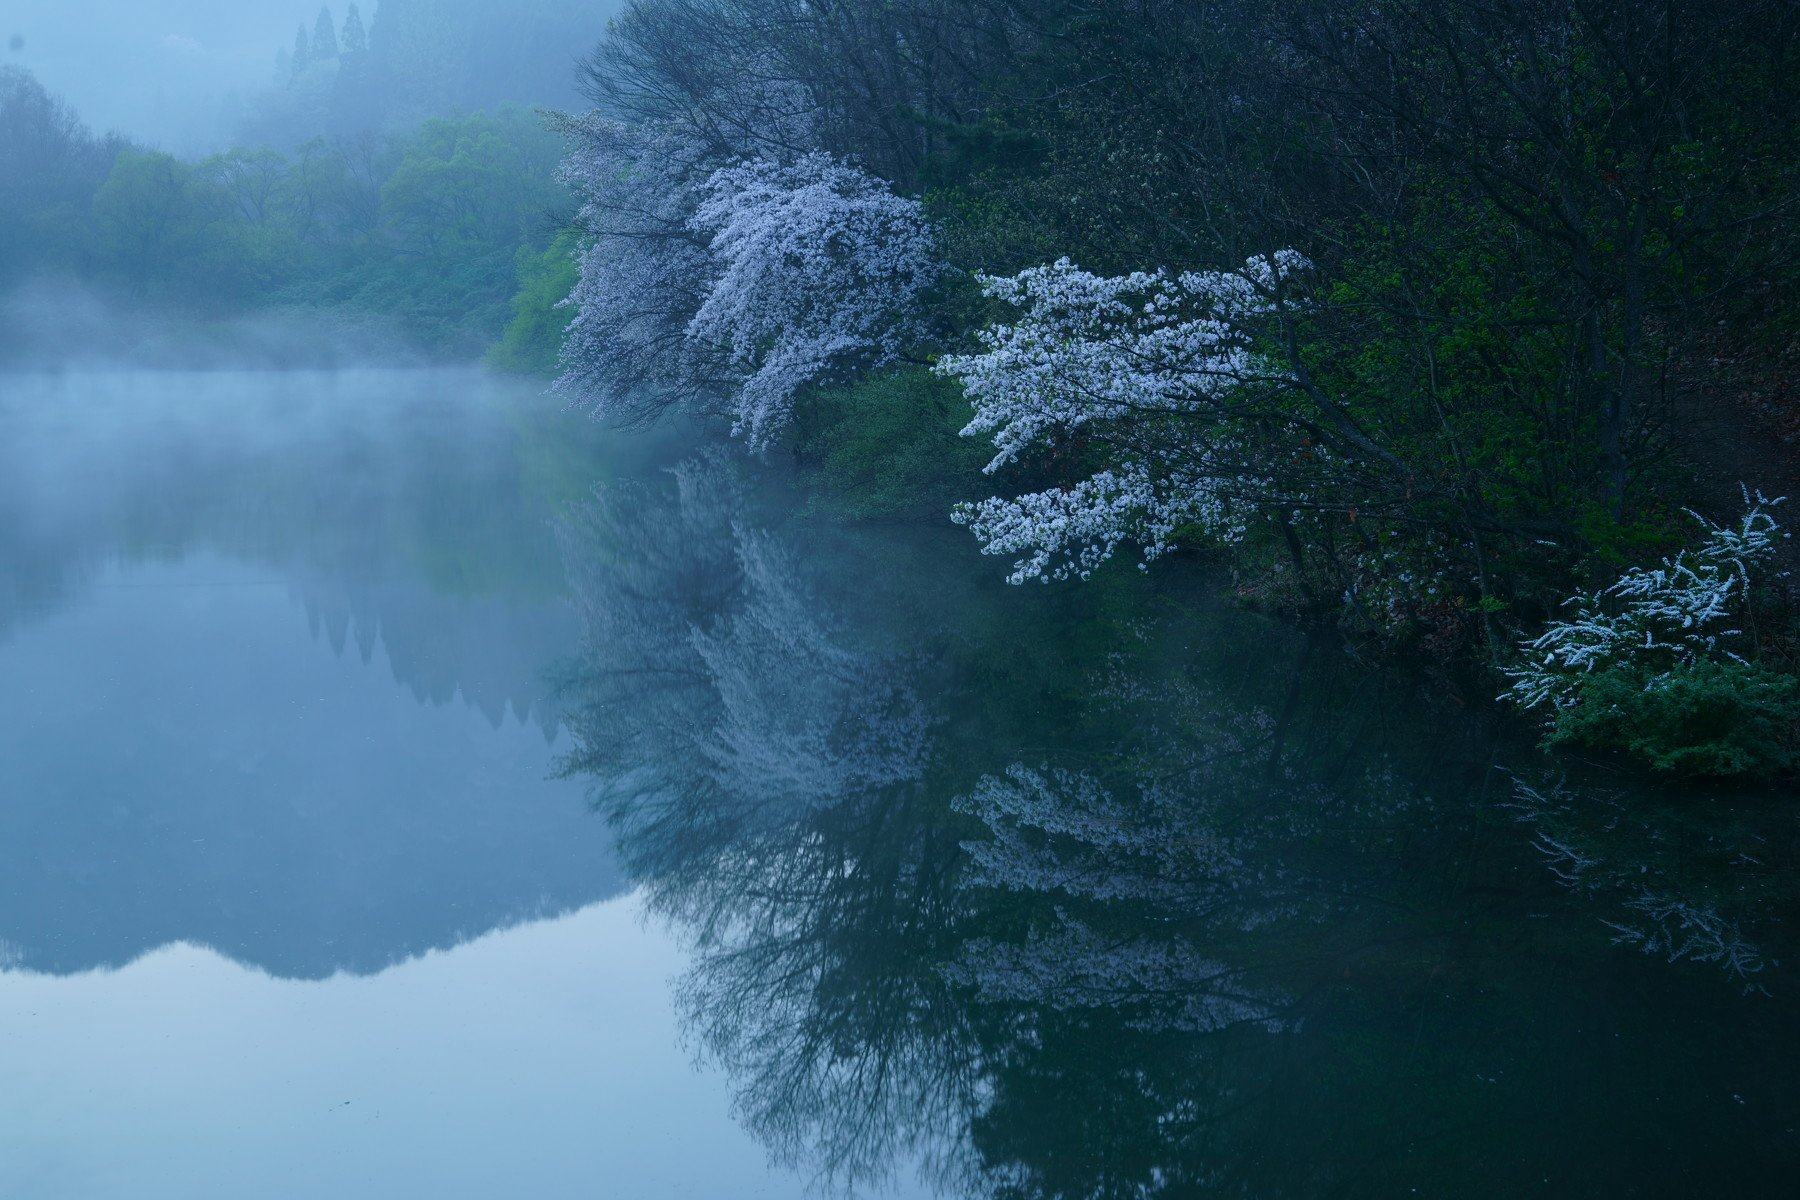 korea,spring,reservoir,morning,cherry blossom,fog,mountain,landscape, Shin